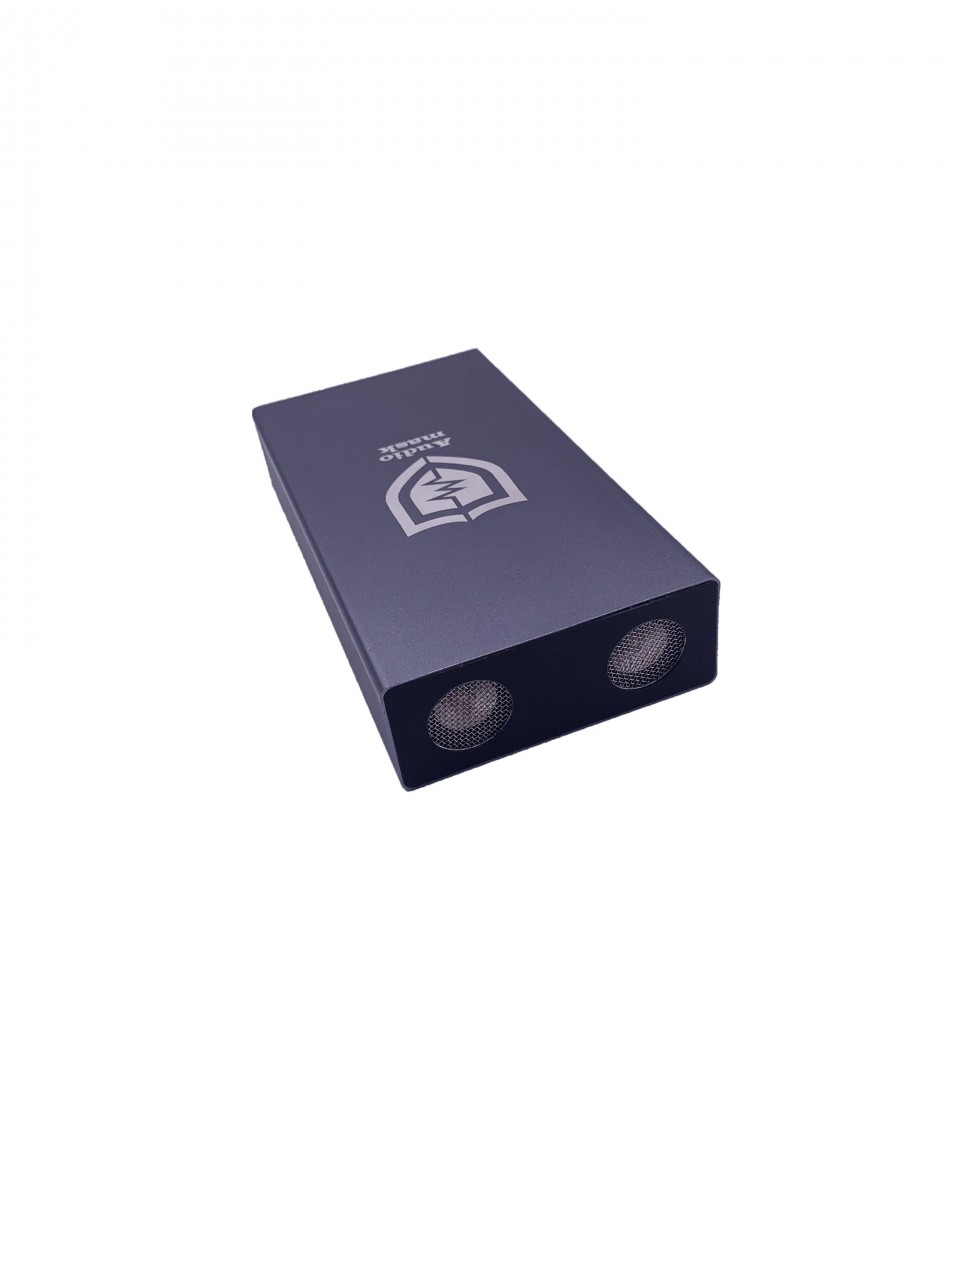 3g gsm cdma dcs phs cell phone signal jammer | cell phone voice recorder jammer